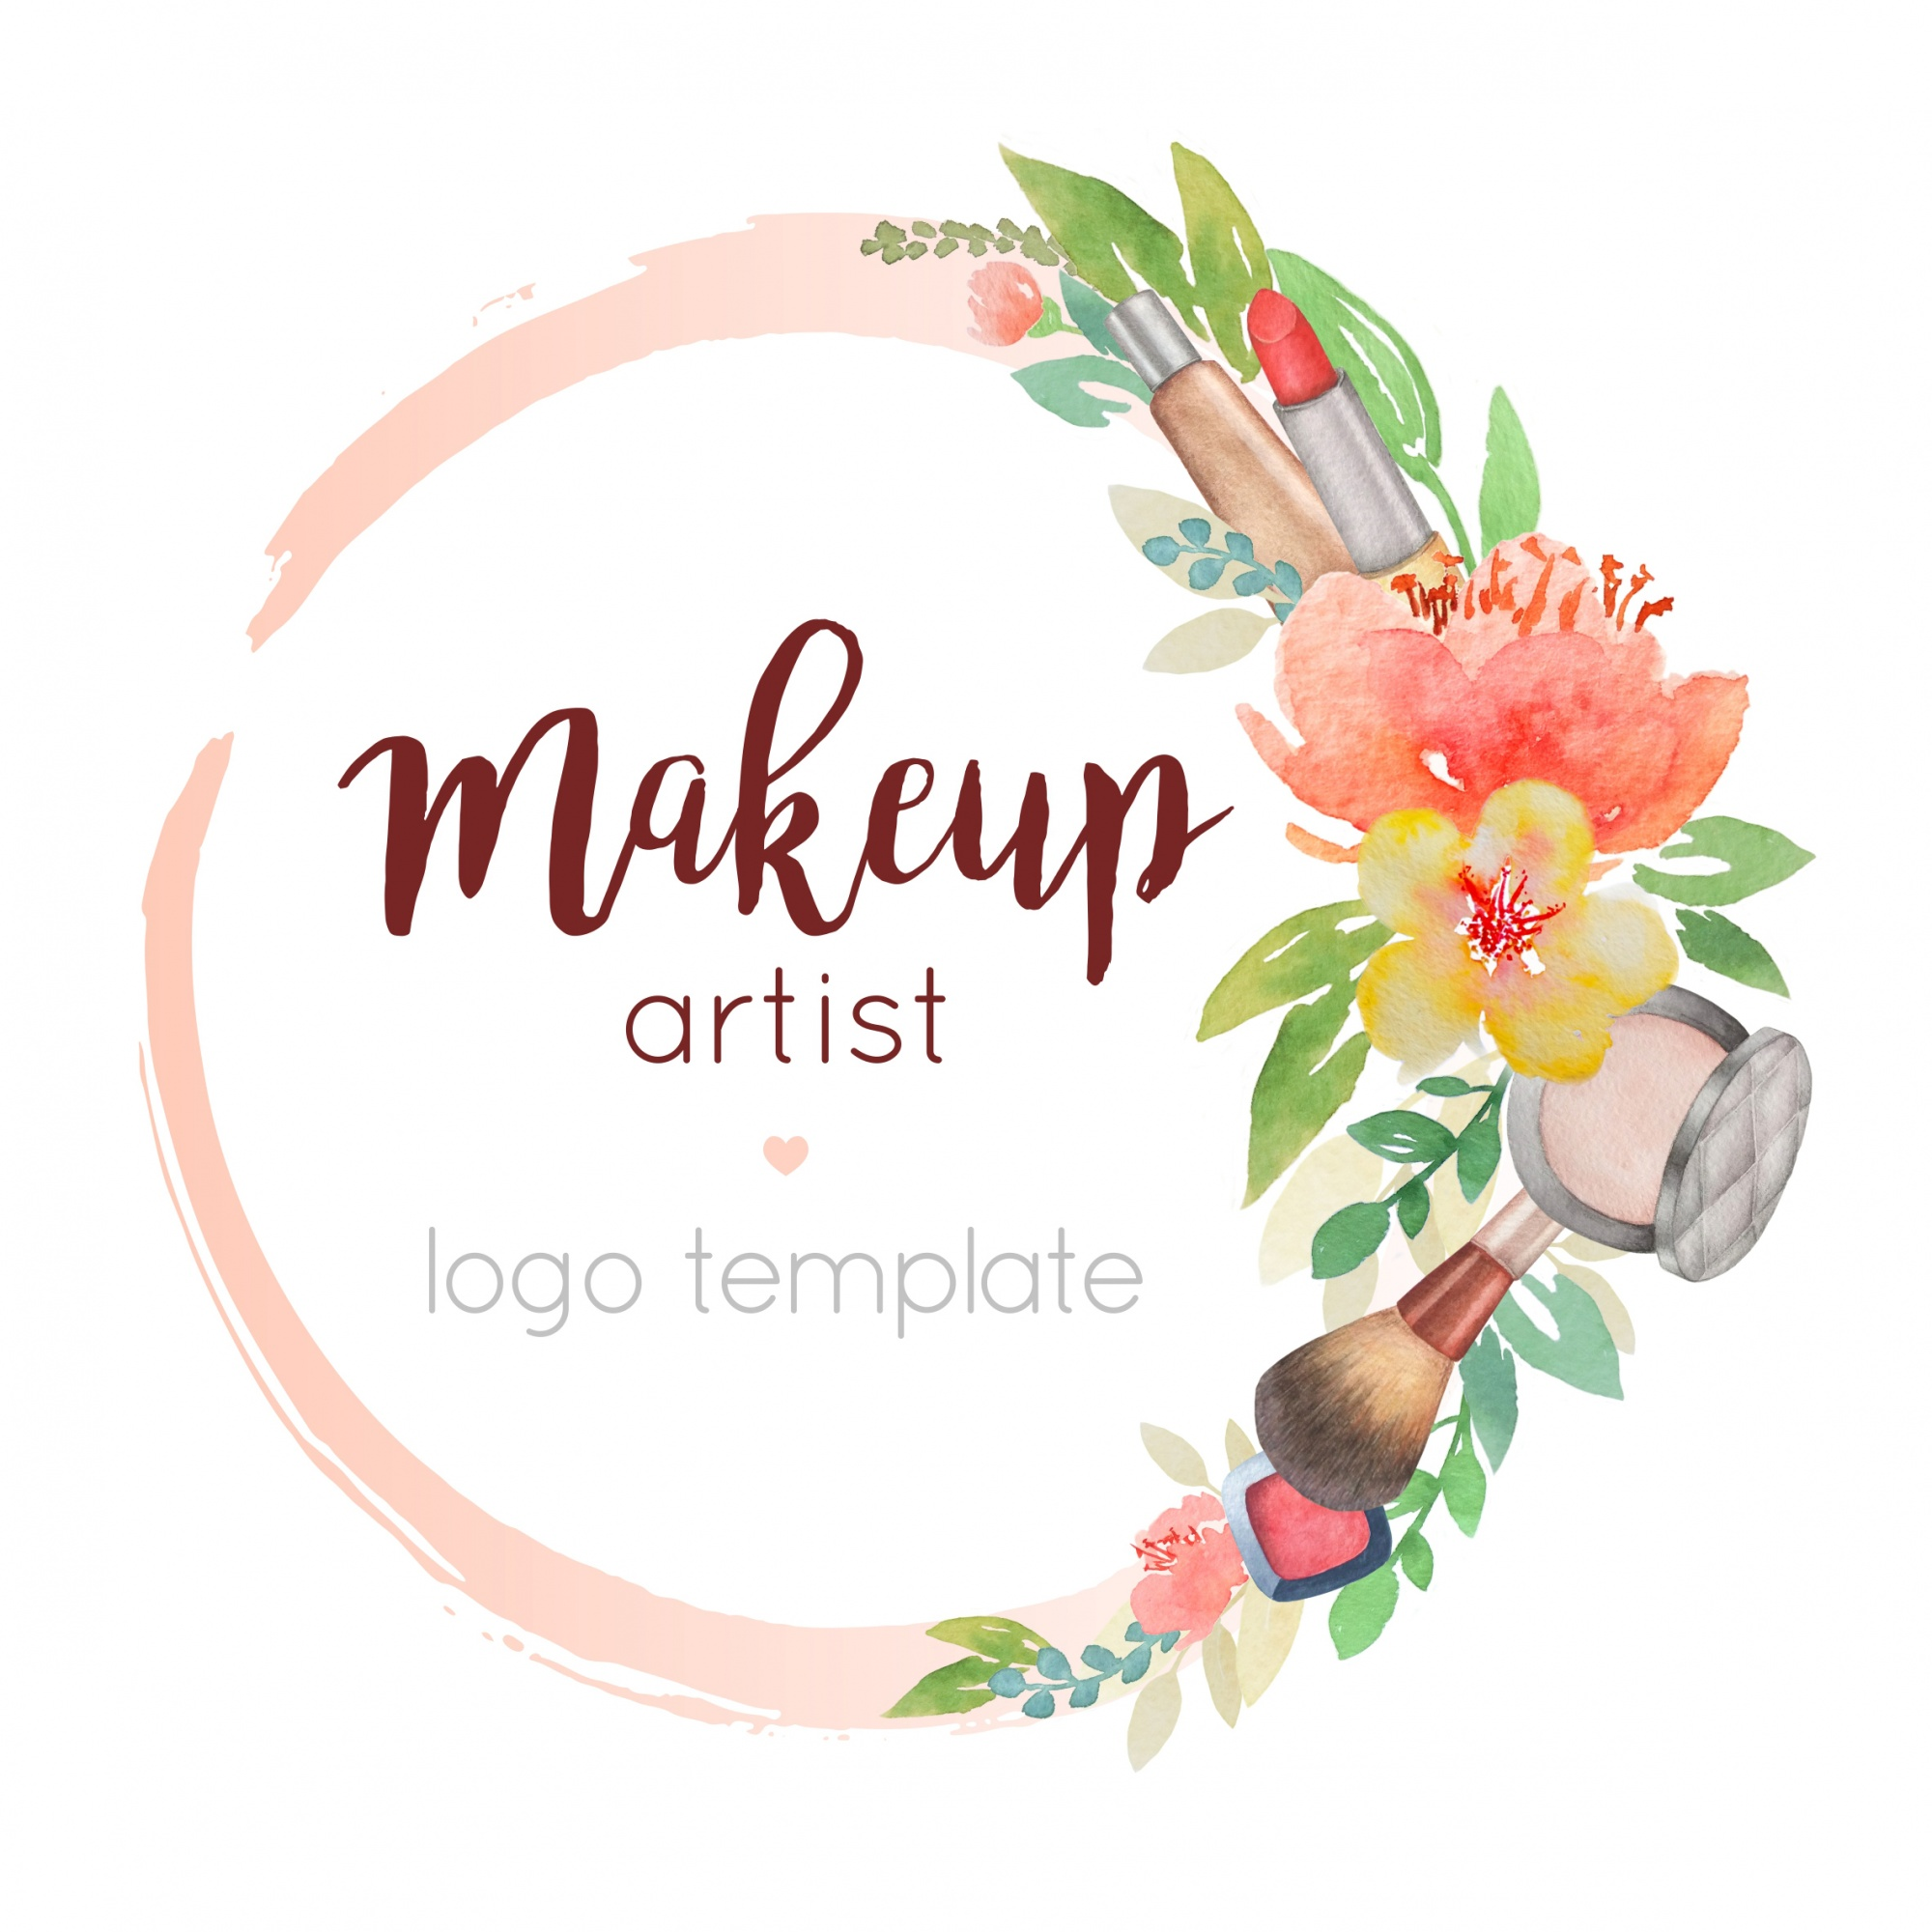 Makeup artist watercolor logo template with flower decor